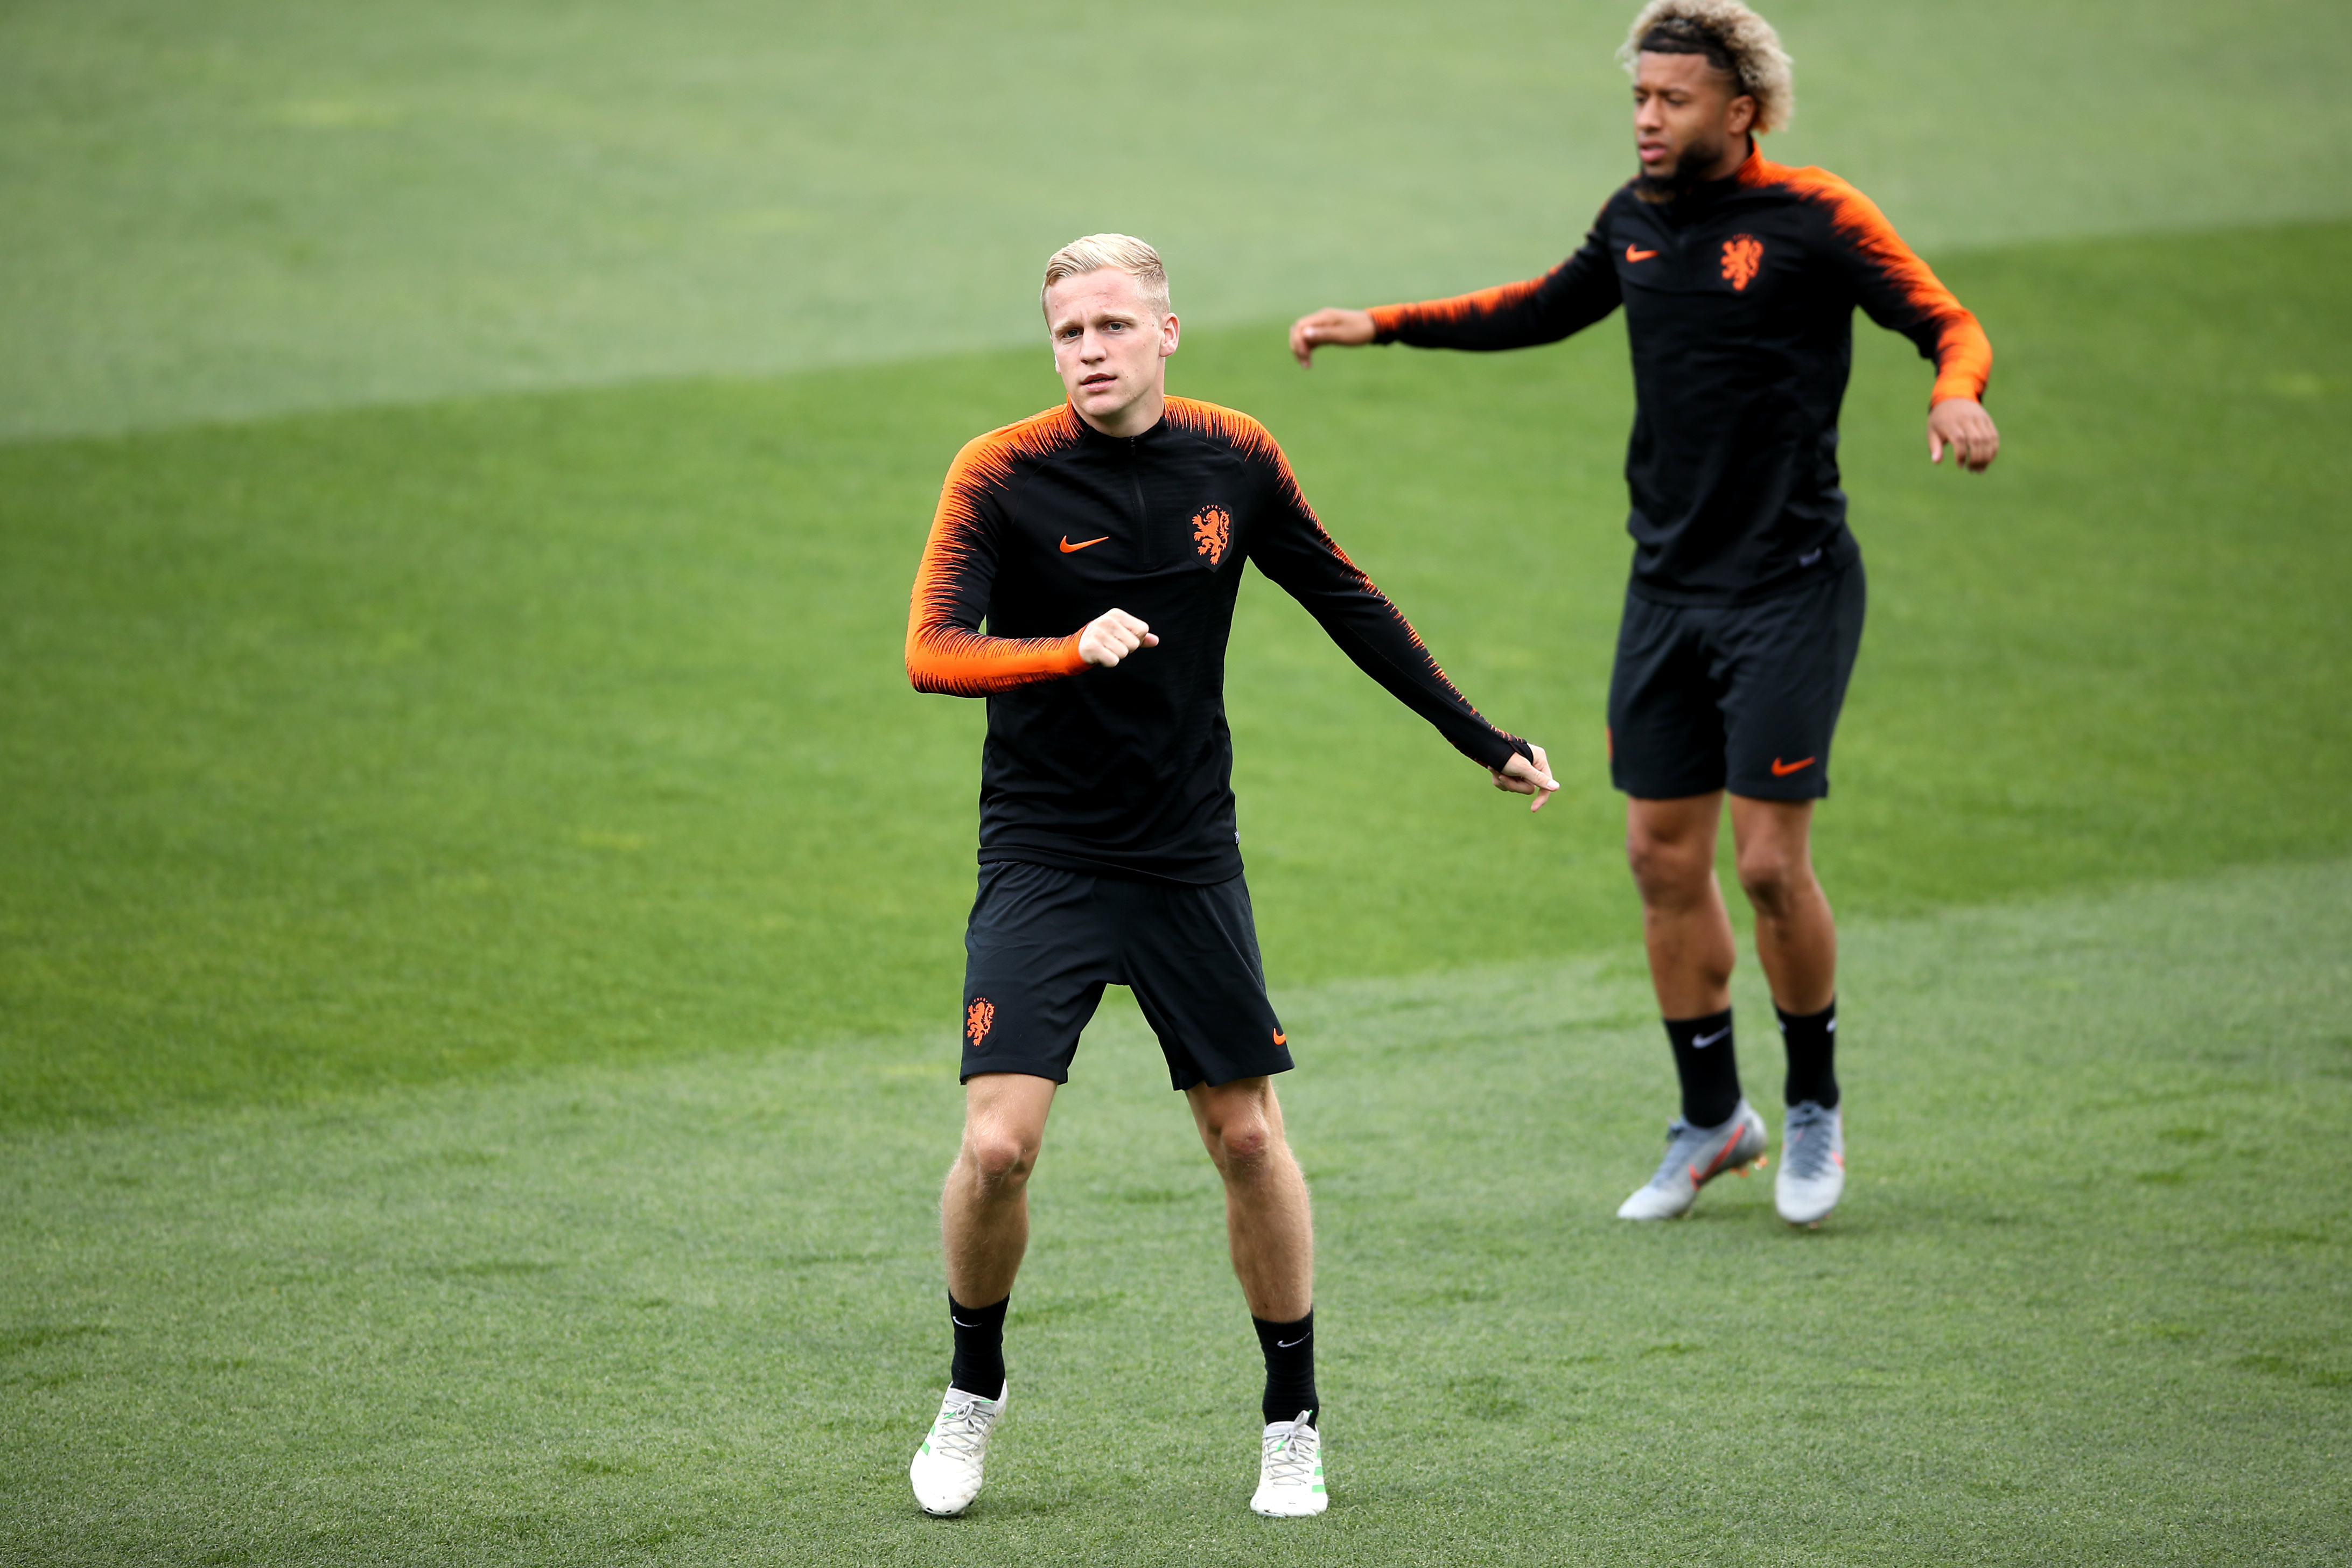 Van de Beek was also part of the Netherland's Nations League squad. Image: PA Images